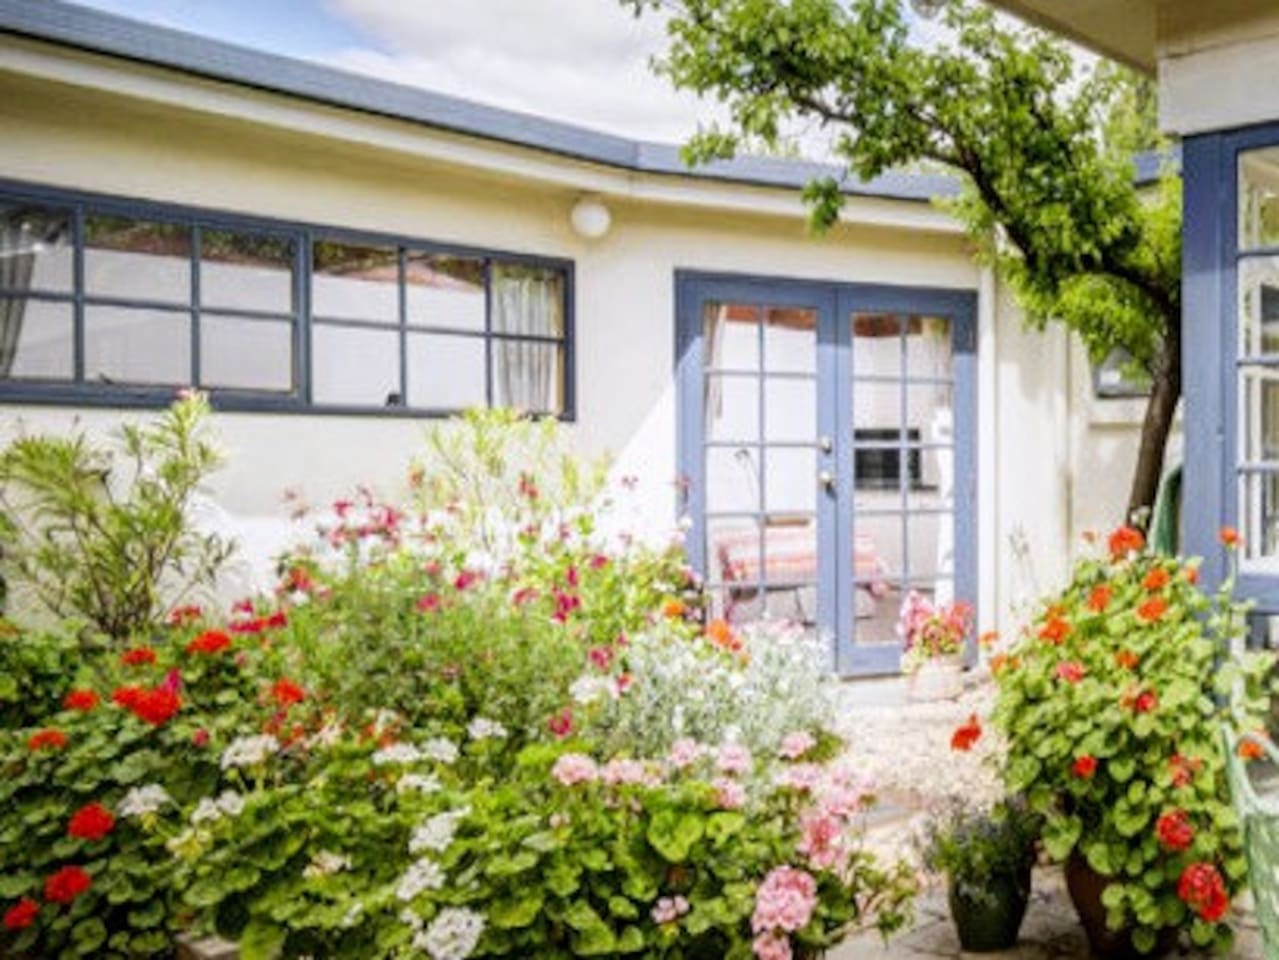 The studio is private and in the rear courtyard away from the road.